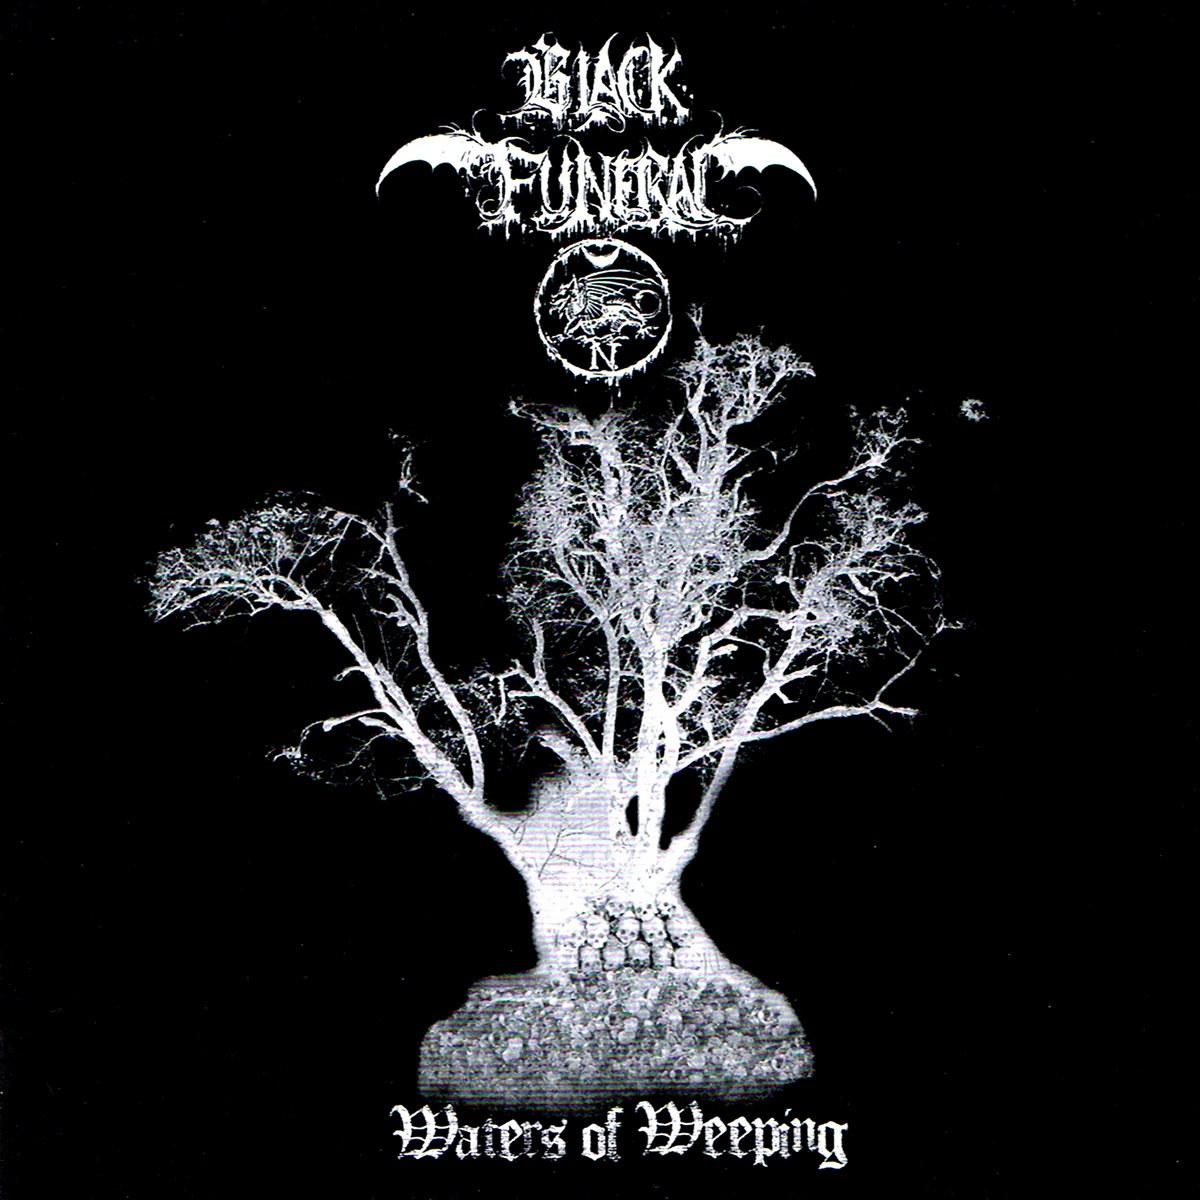 Reviews for Black Funeral - Waters of Weeping